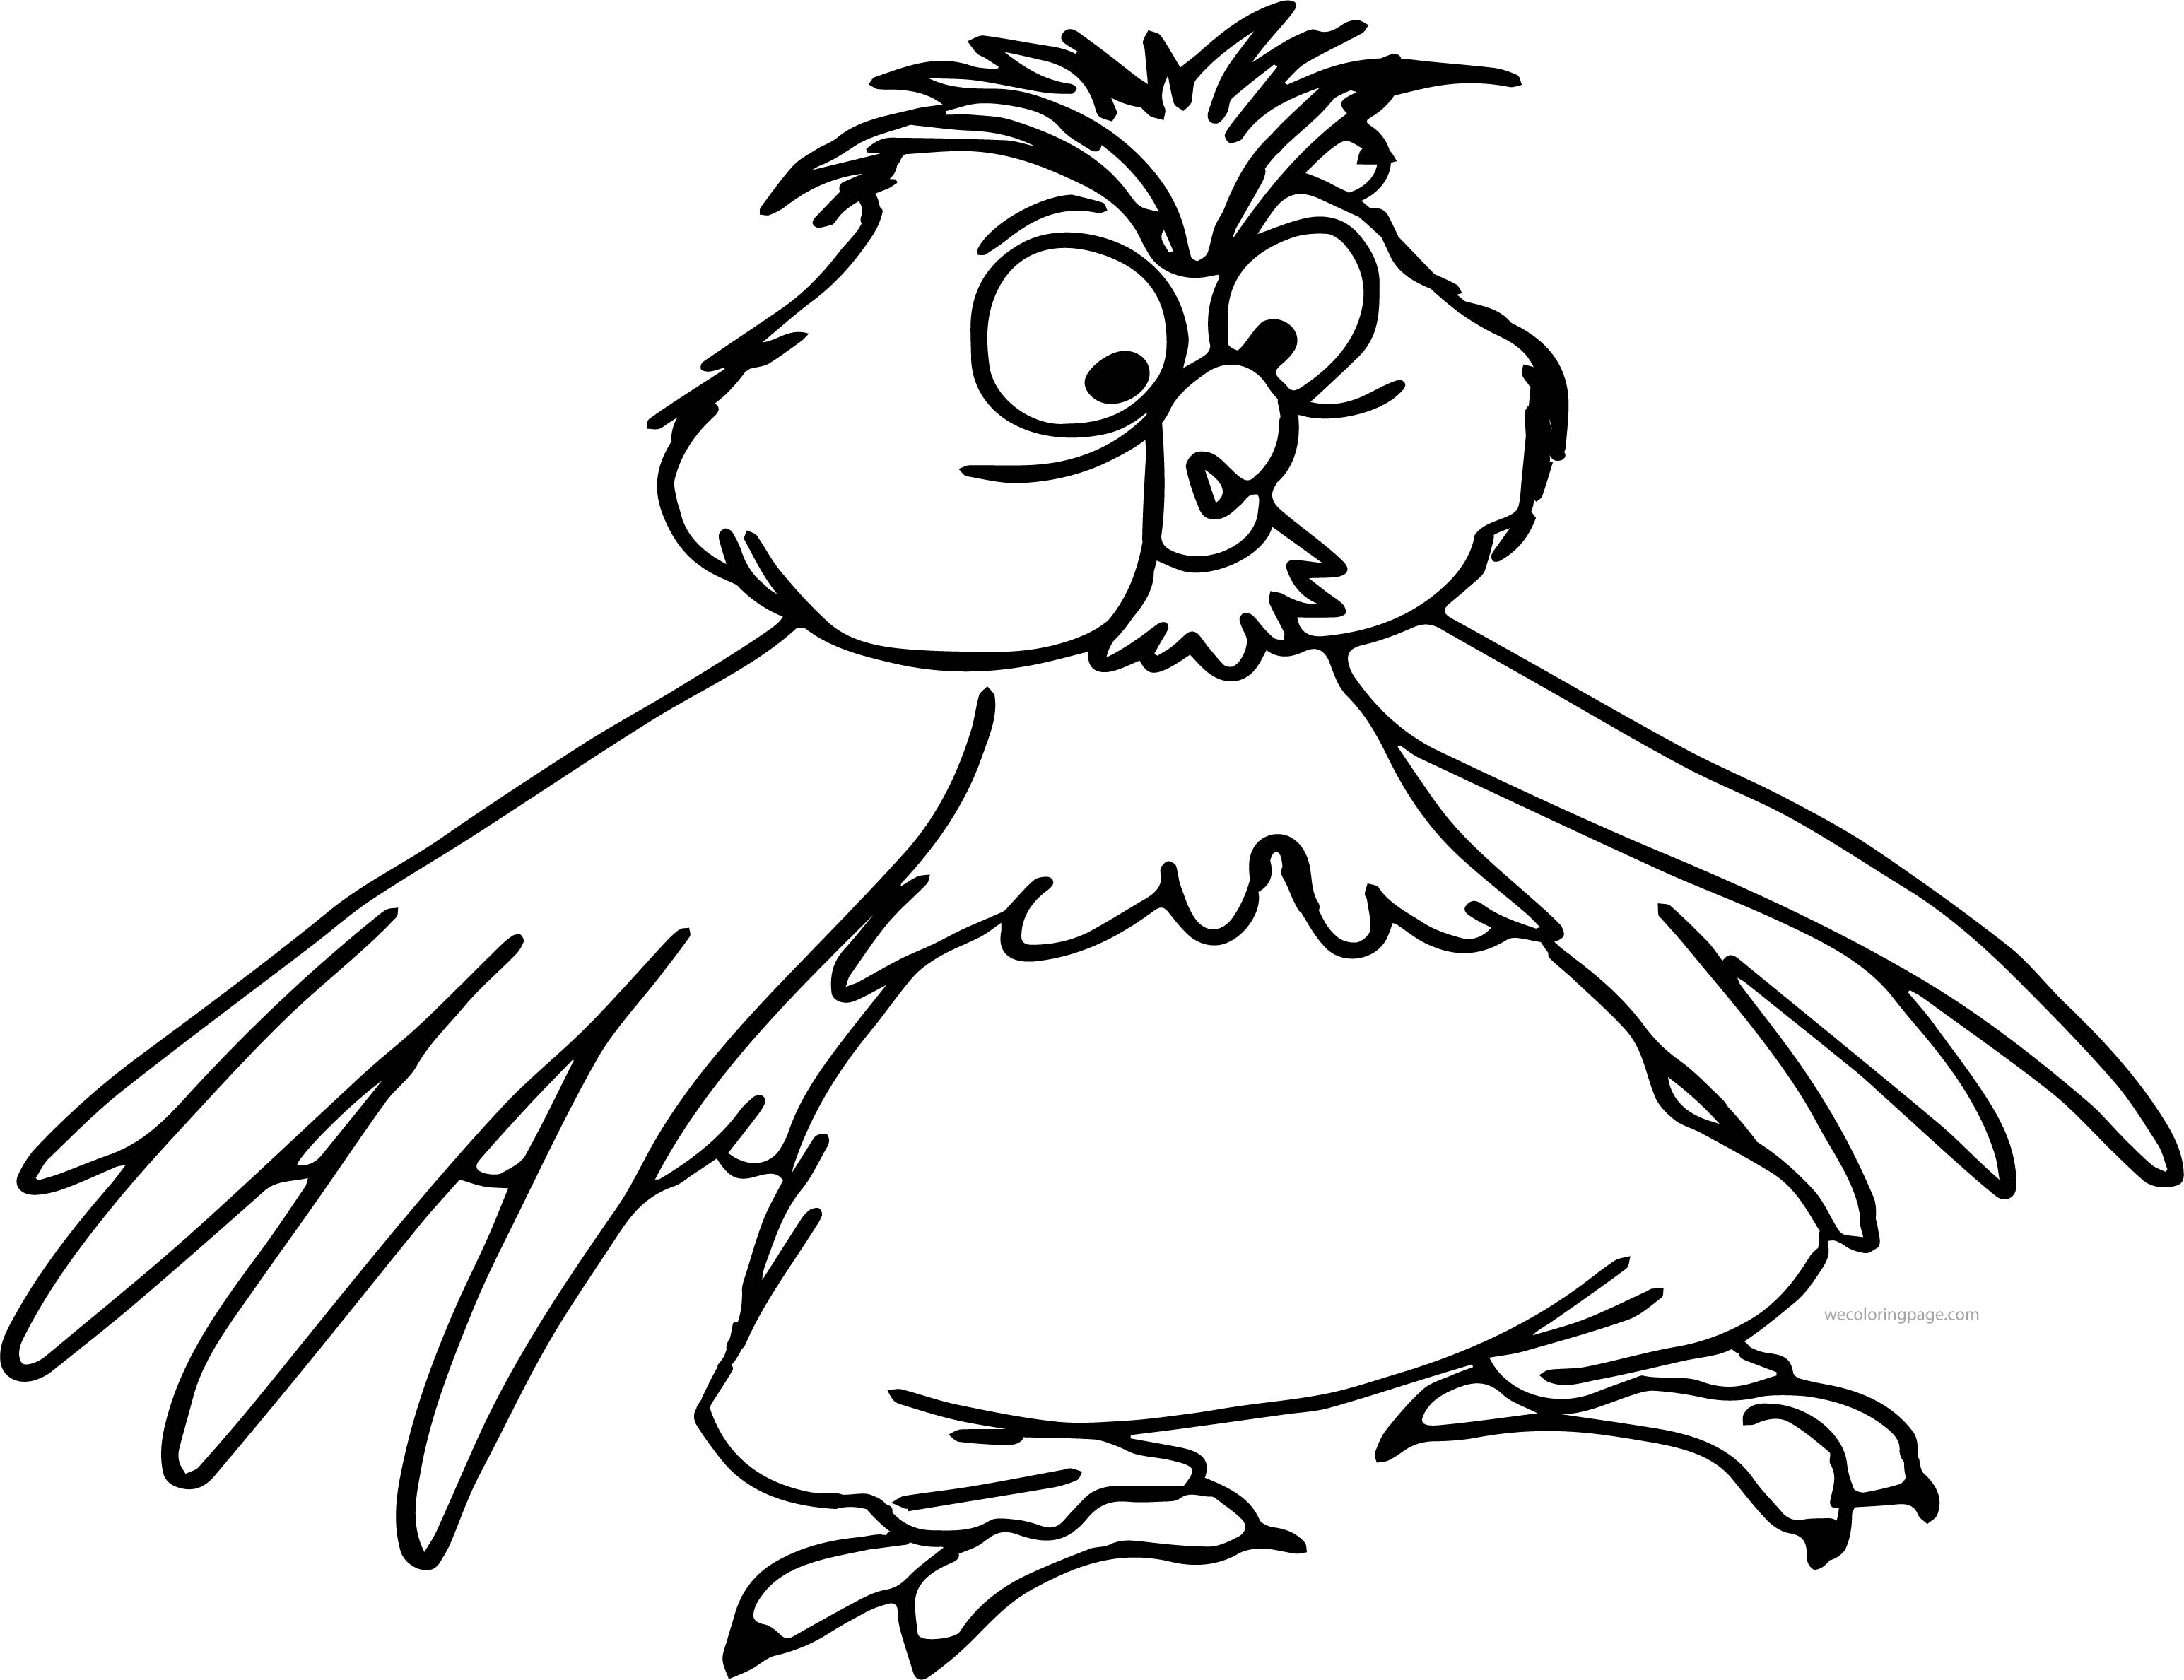 the sword in the stone archimedes owl cartoon coloring pages